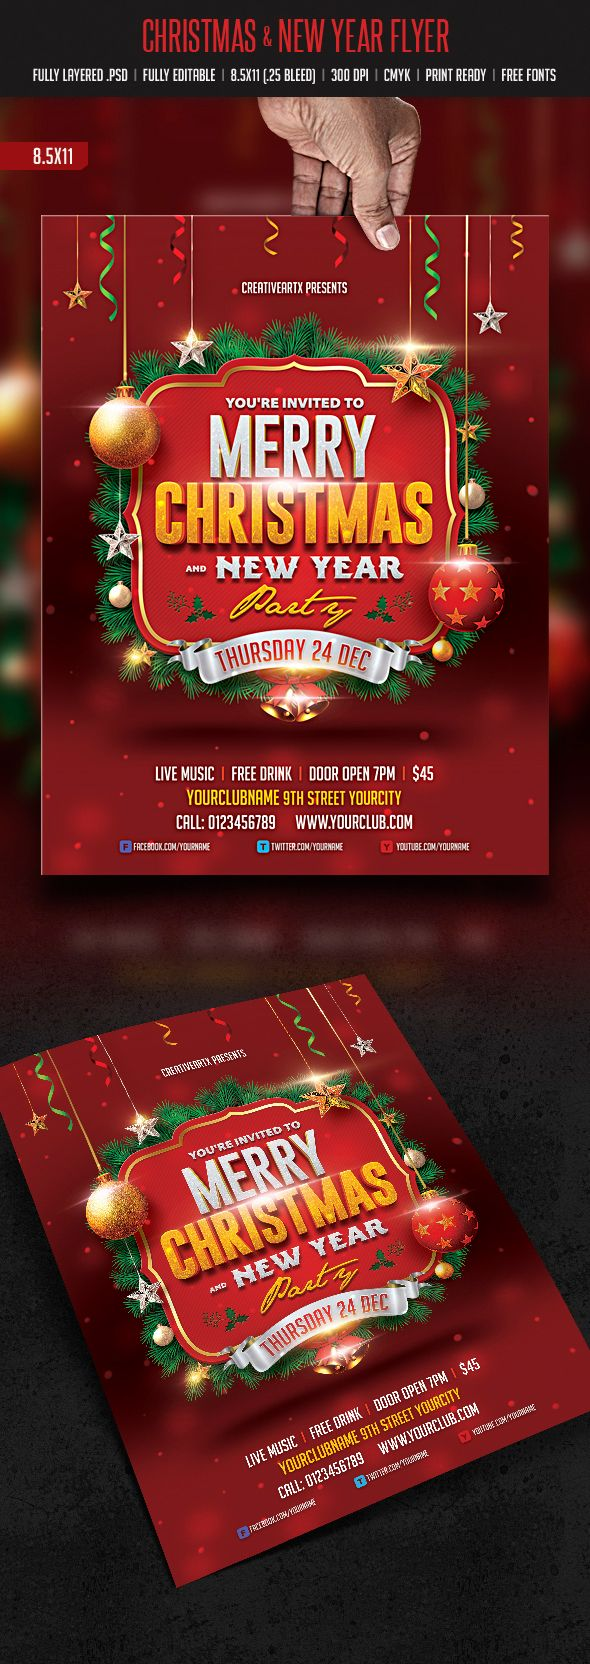 Christmas & New Year Flyer on Behance